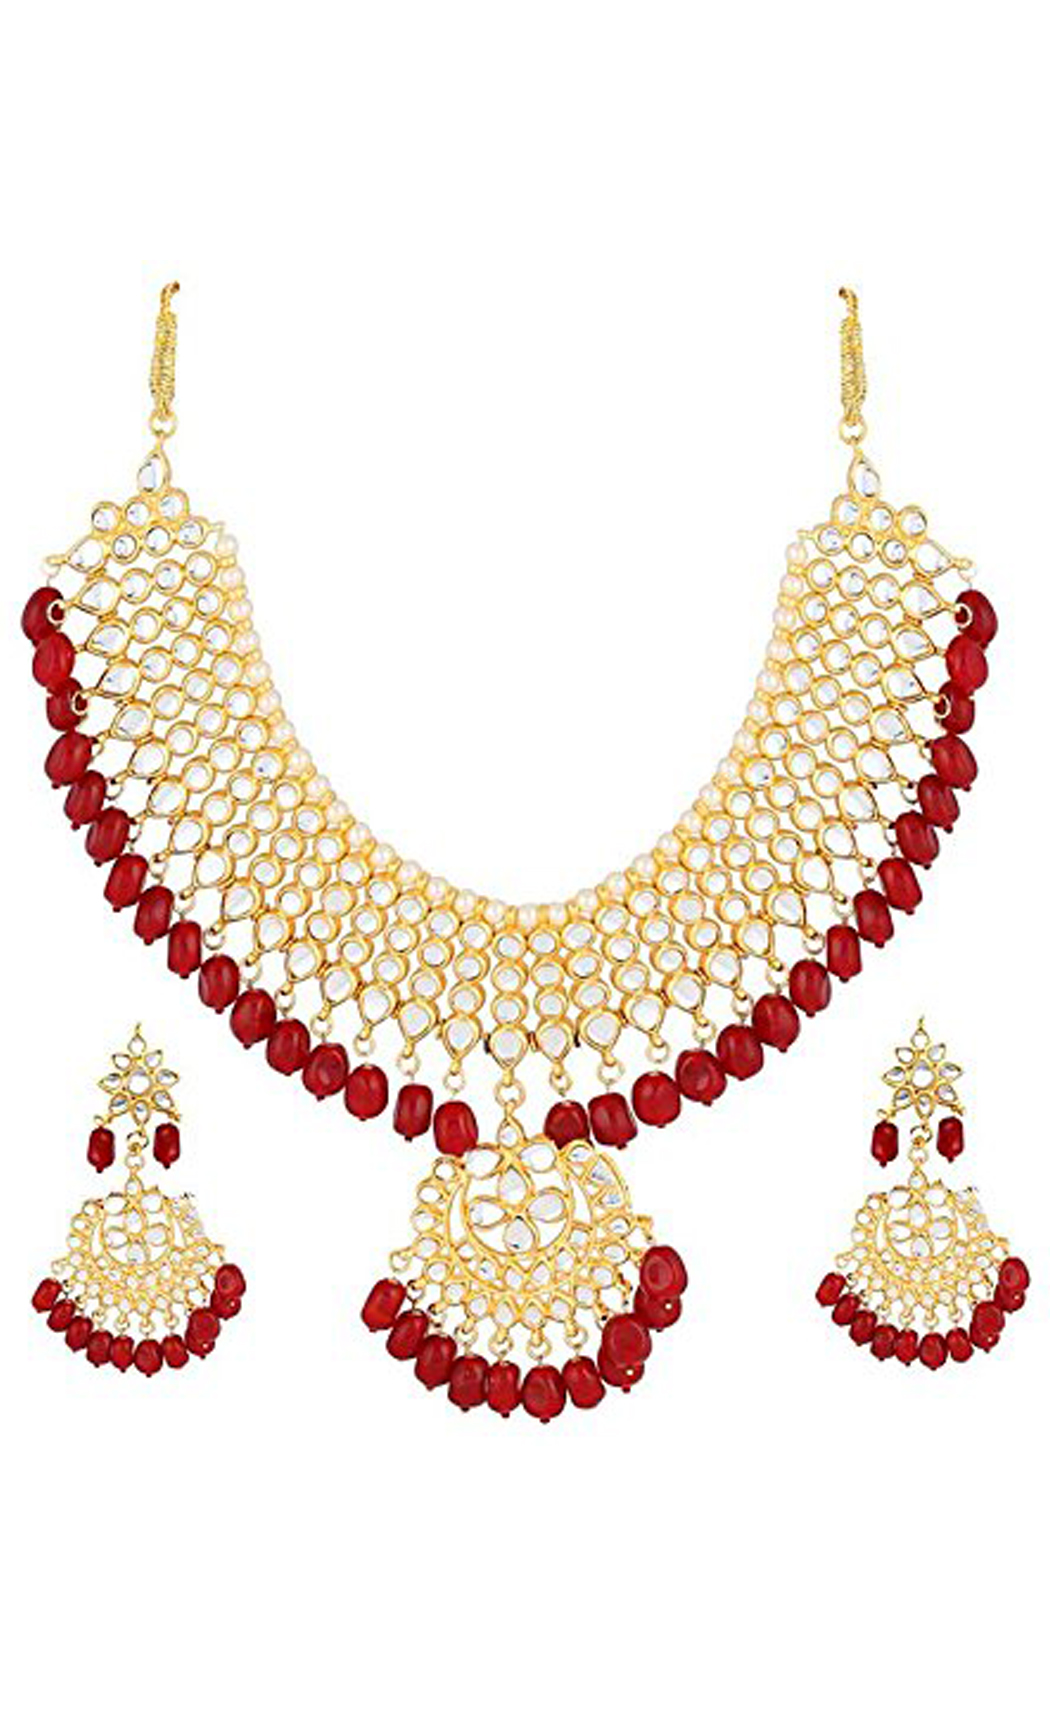 Kundan and Red Stone Neckpiece and Earrings Set | Indian Bridal Jewellery Sets with Price | Buy Online